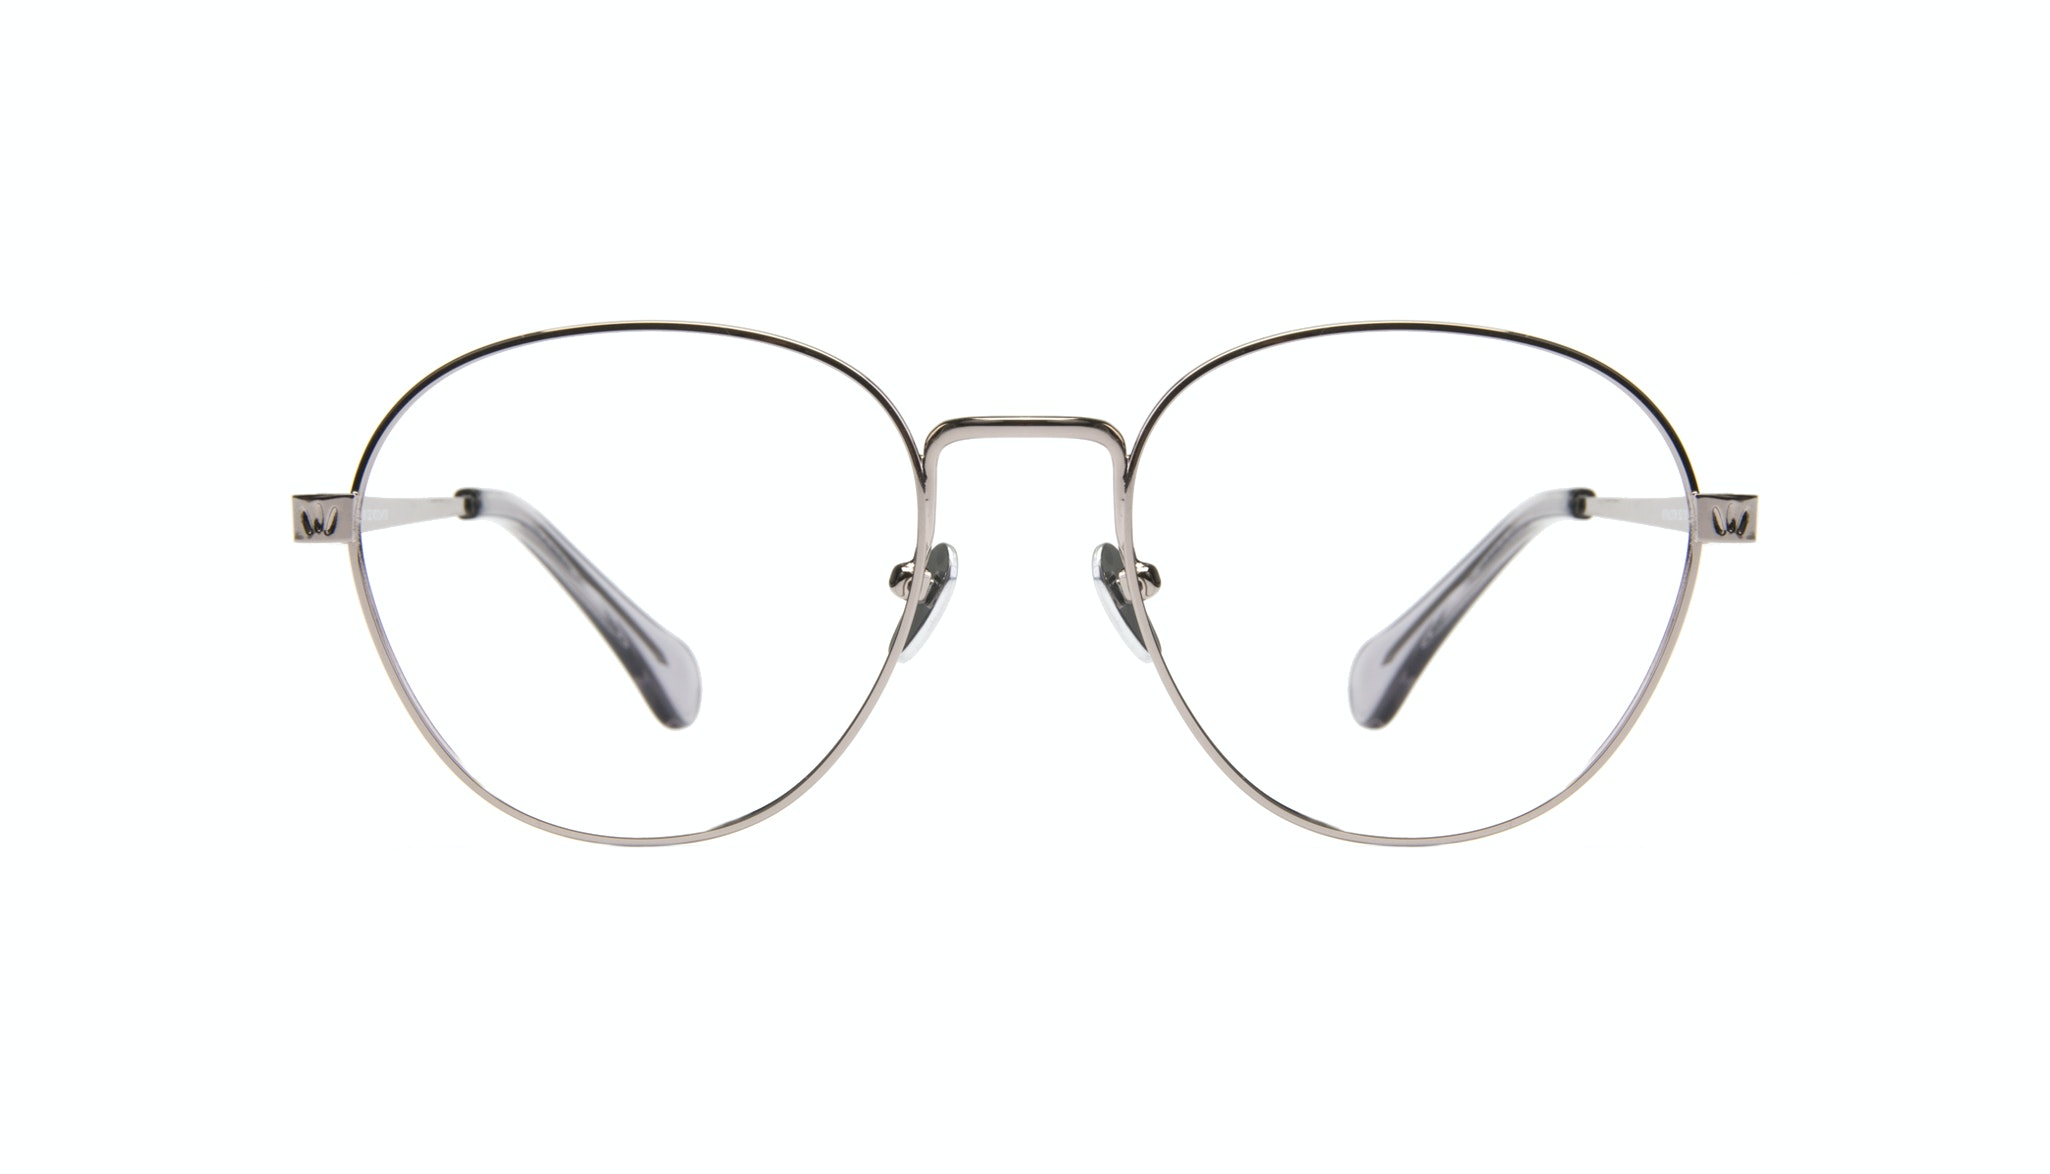 Affordable Fashion Glasses Round Eyeglasses Women Brace Silver